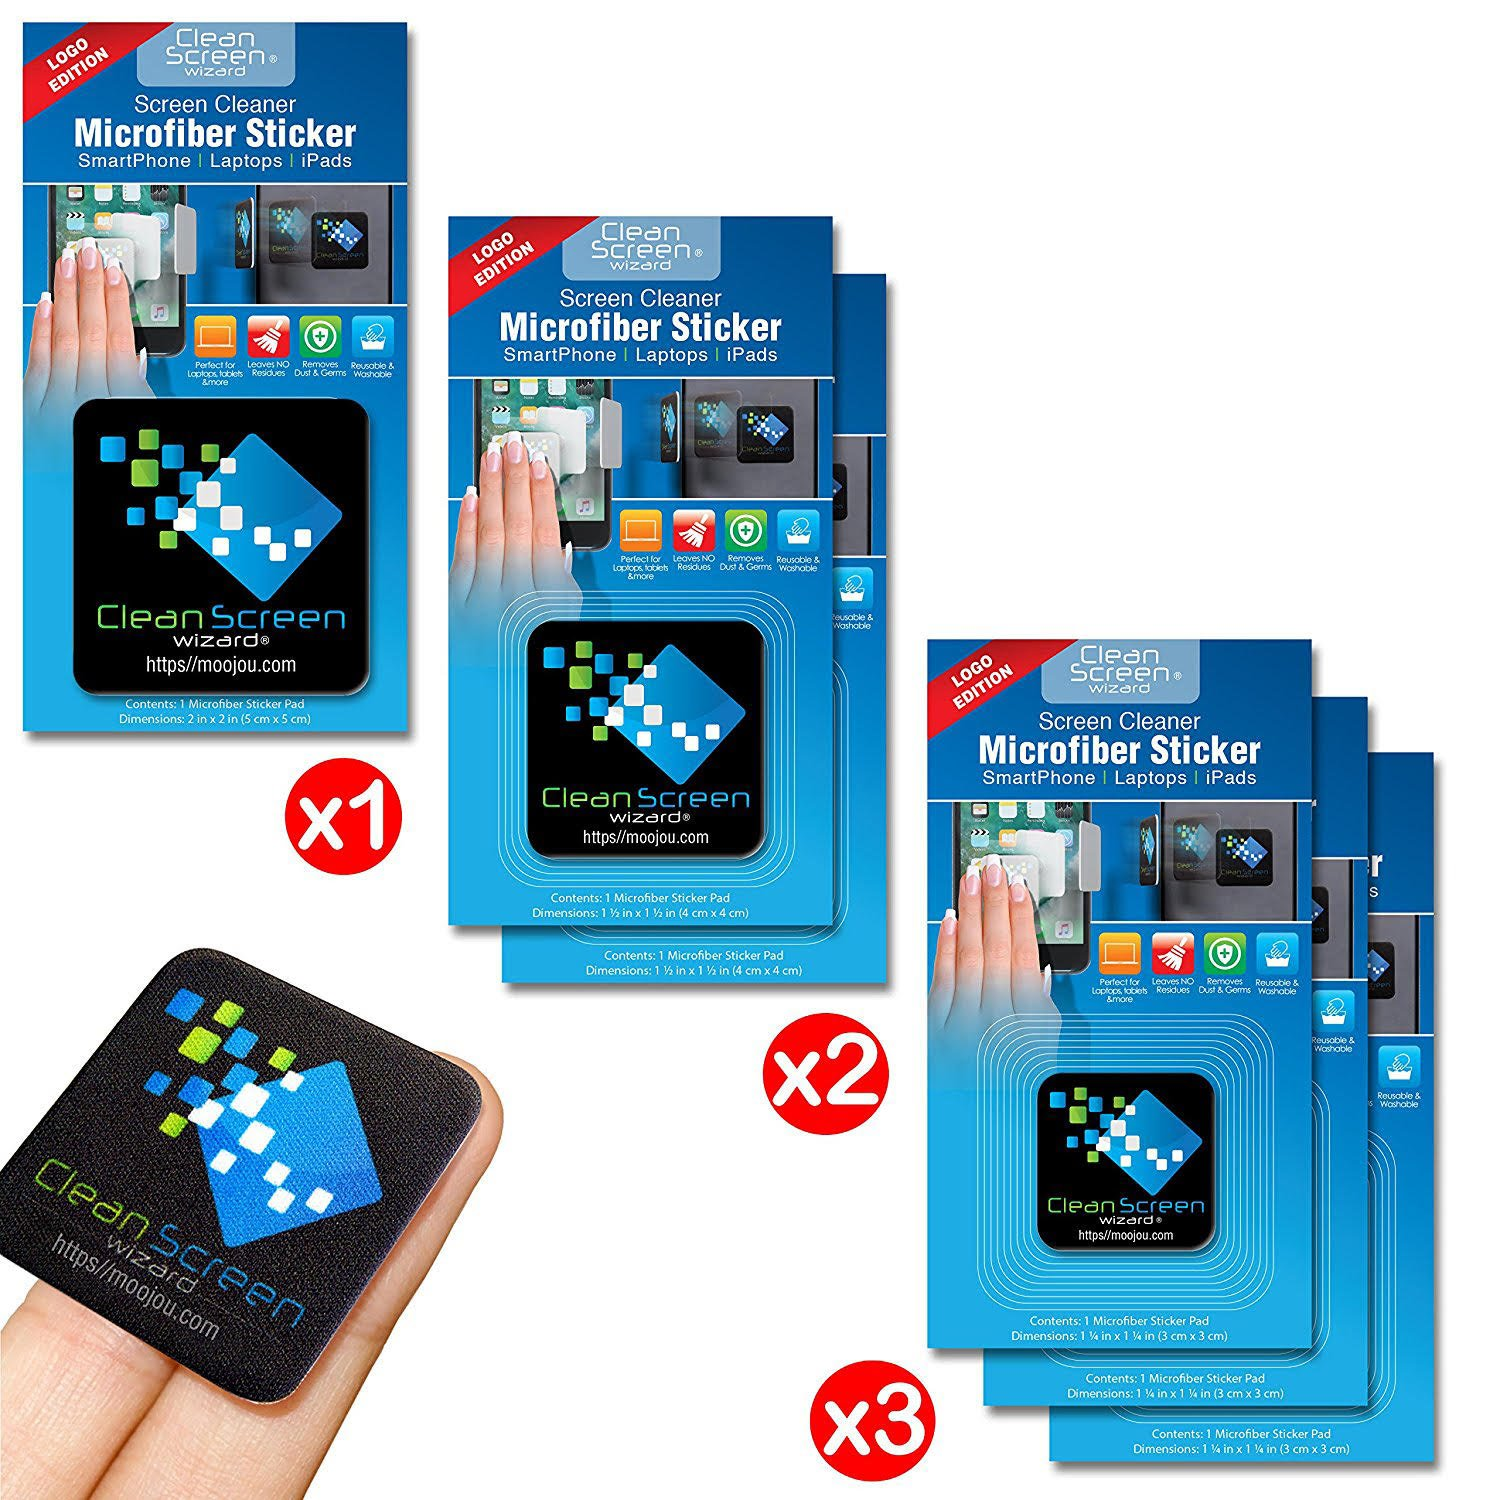 CLEAN SCREEN WIZARD Microfiber Screen Cleaner Sticker, Handy Screen Cleaning Kit, 6 Pack Bundle Cleaning Stickers, 1 Large, 2 Medium, 3 Small in Black for Multi Size Screens